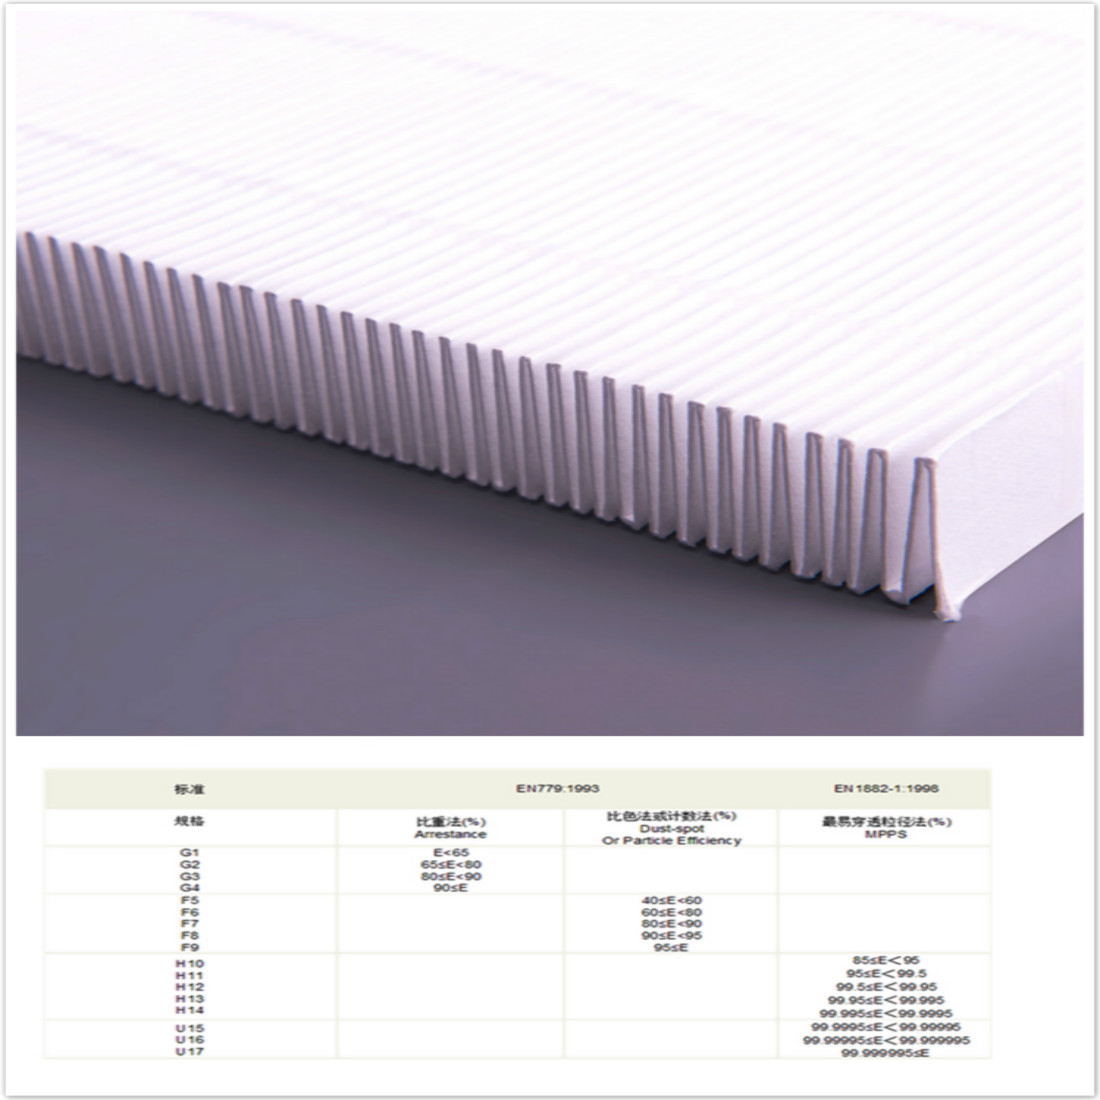 Fiberglass air filter paper index data